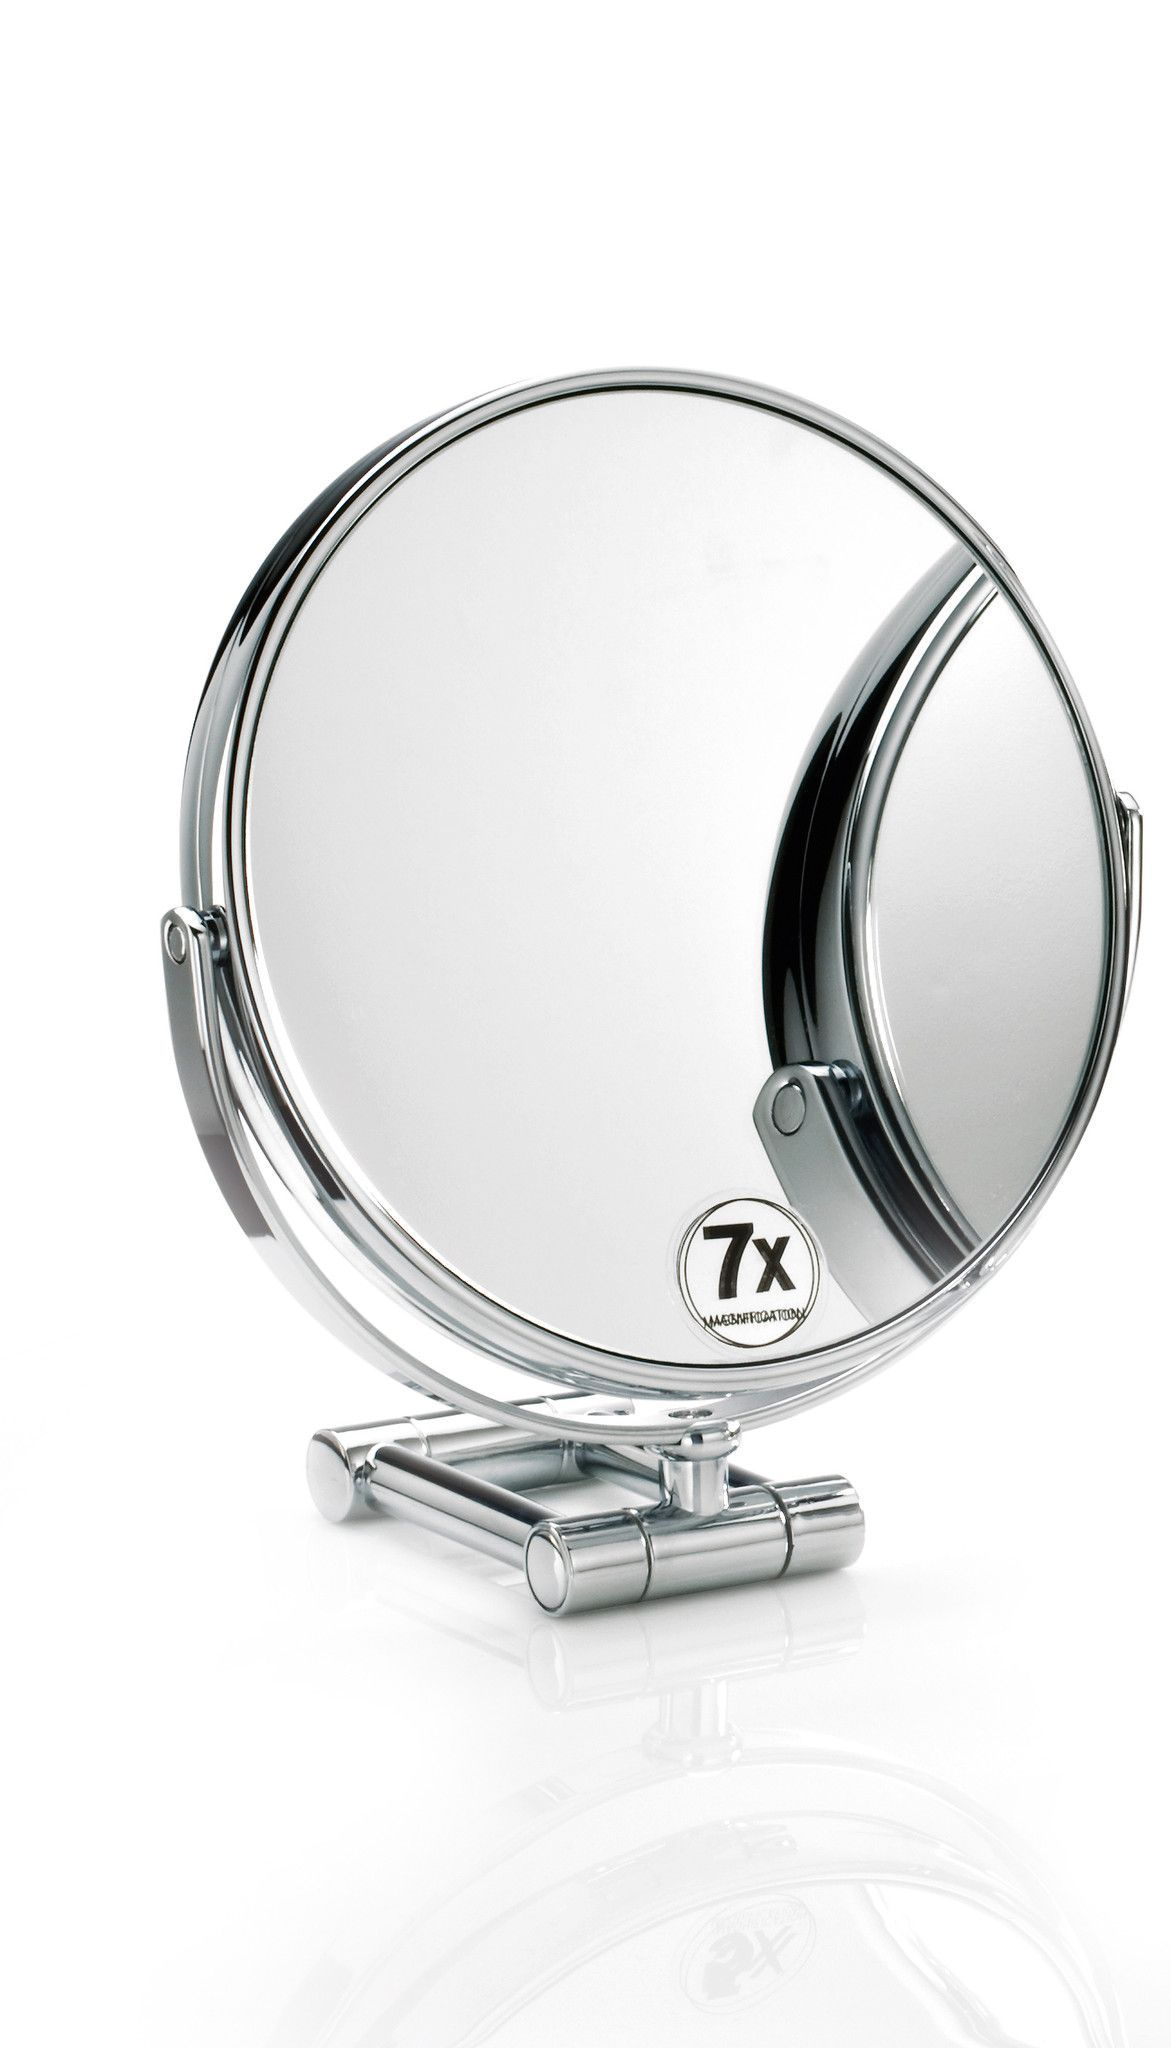 Walther Round Cosmetic Table Makeup ADJ Magnifying Mirror. Chrome